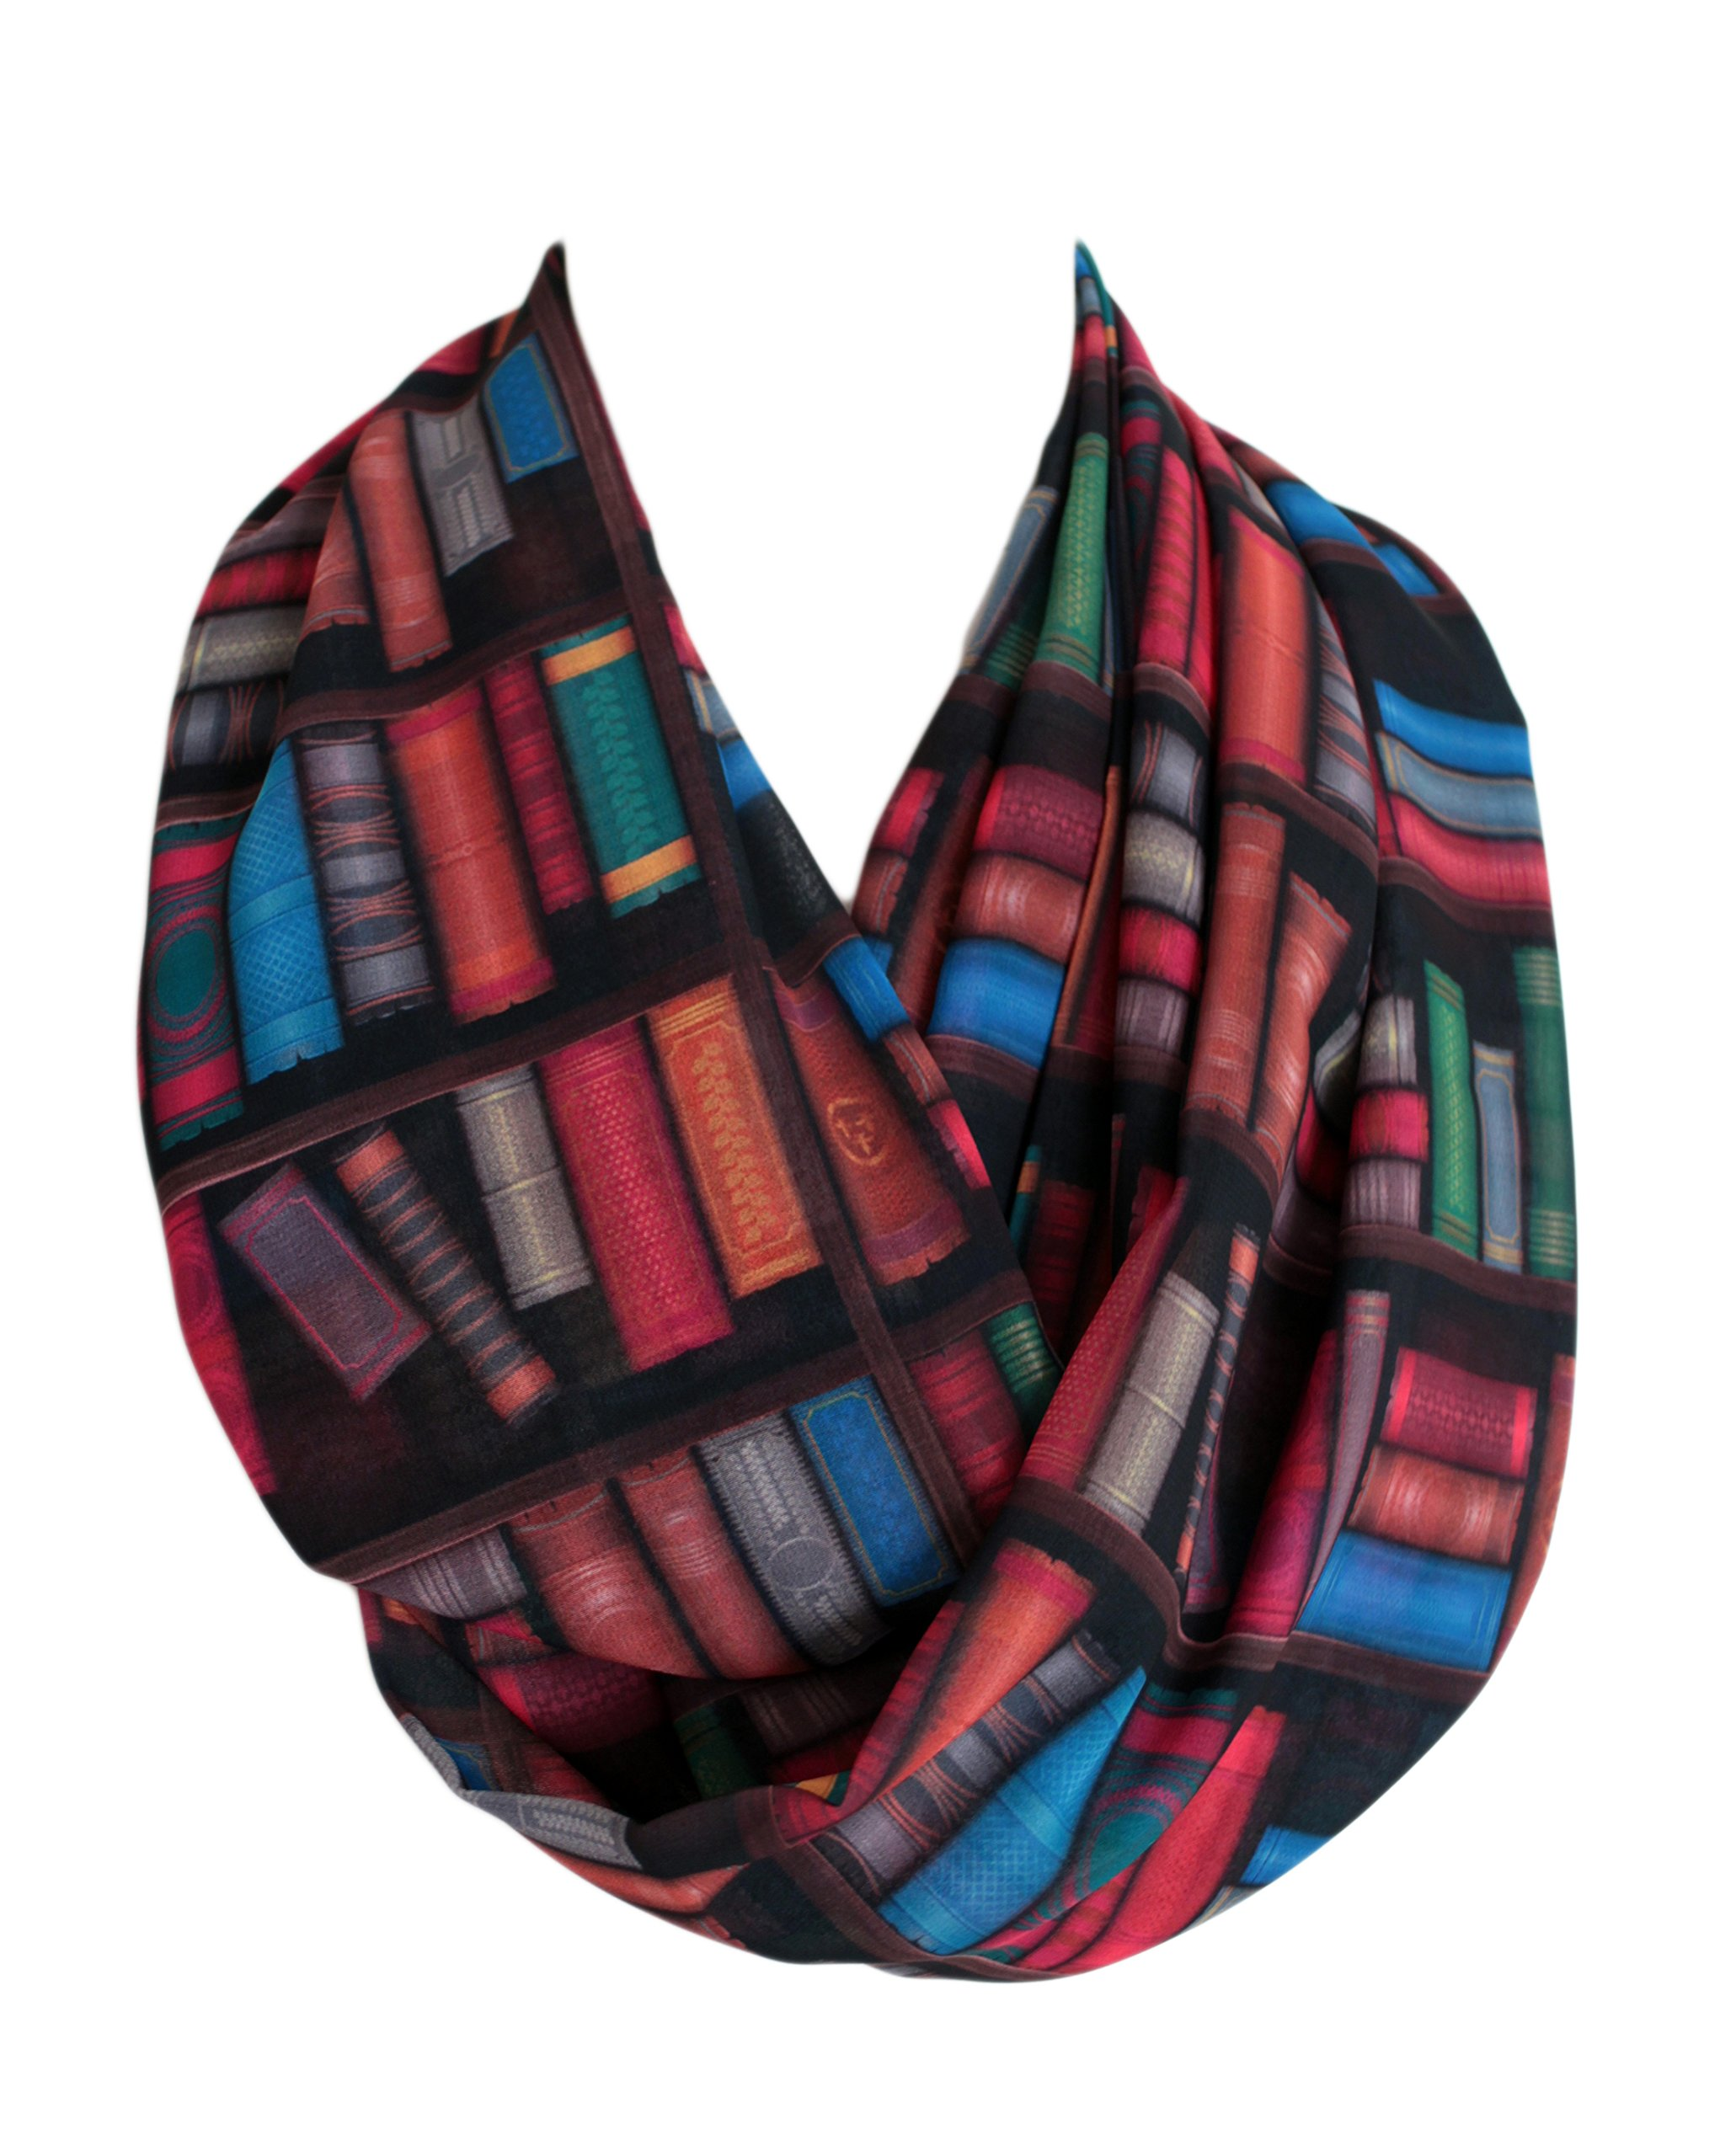 Etwoa's Bookshelf Colorful Books Infinity Scarf Circle Scarf Loop Scarf